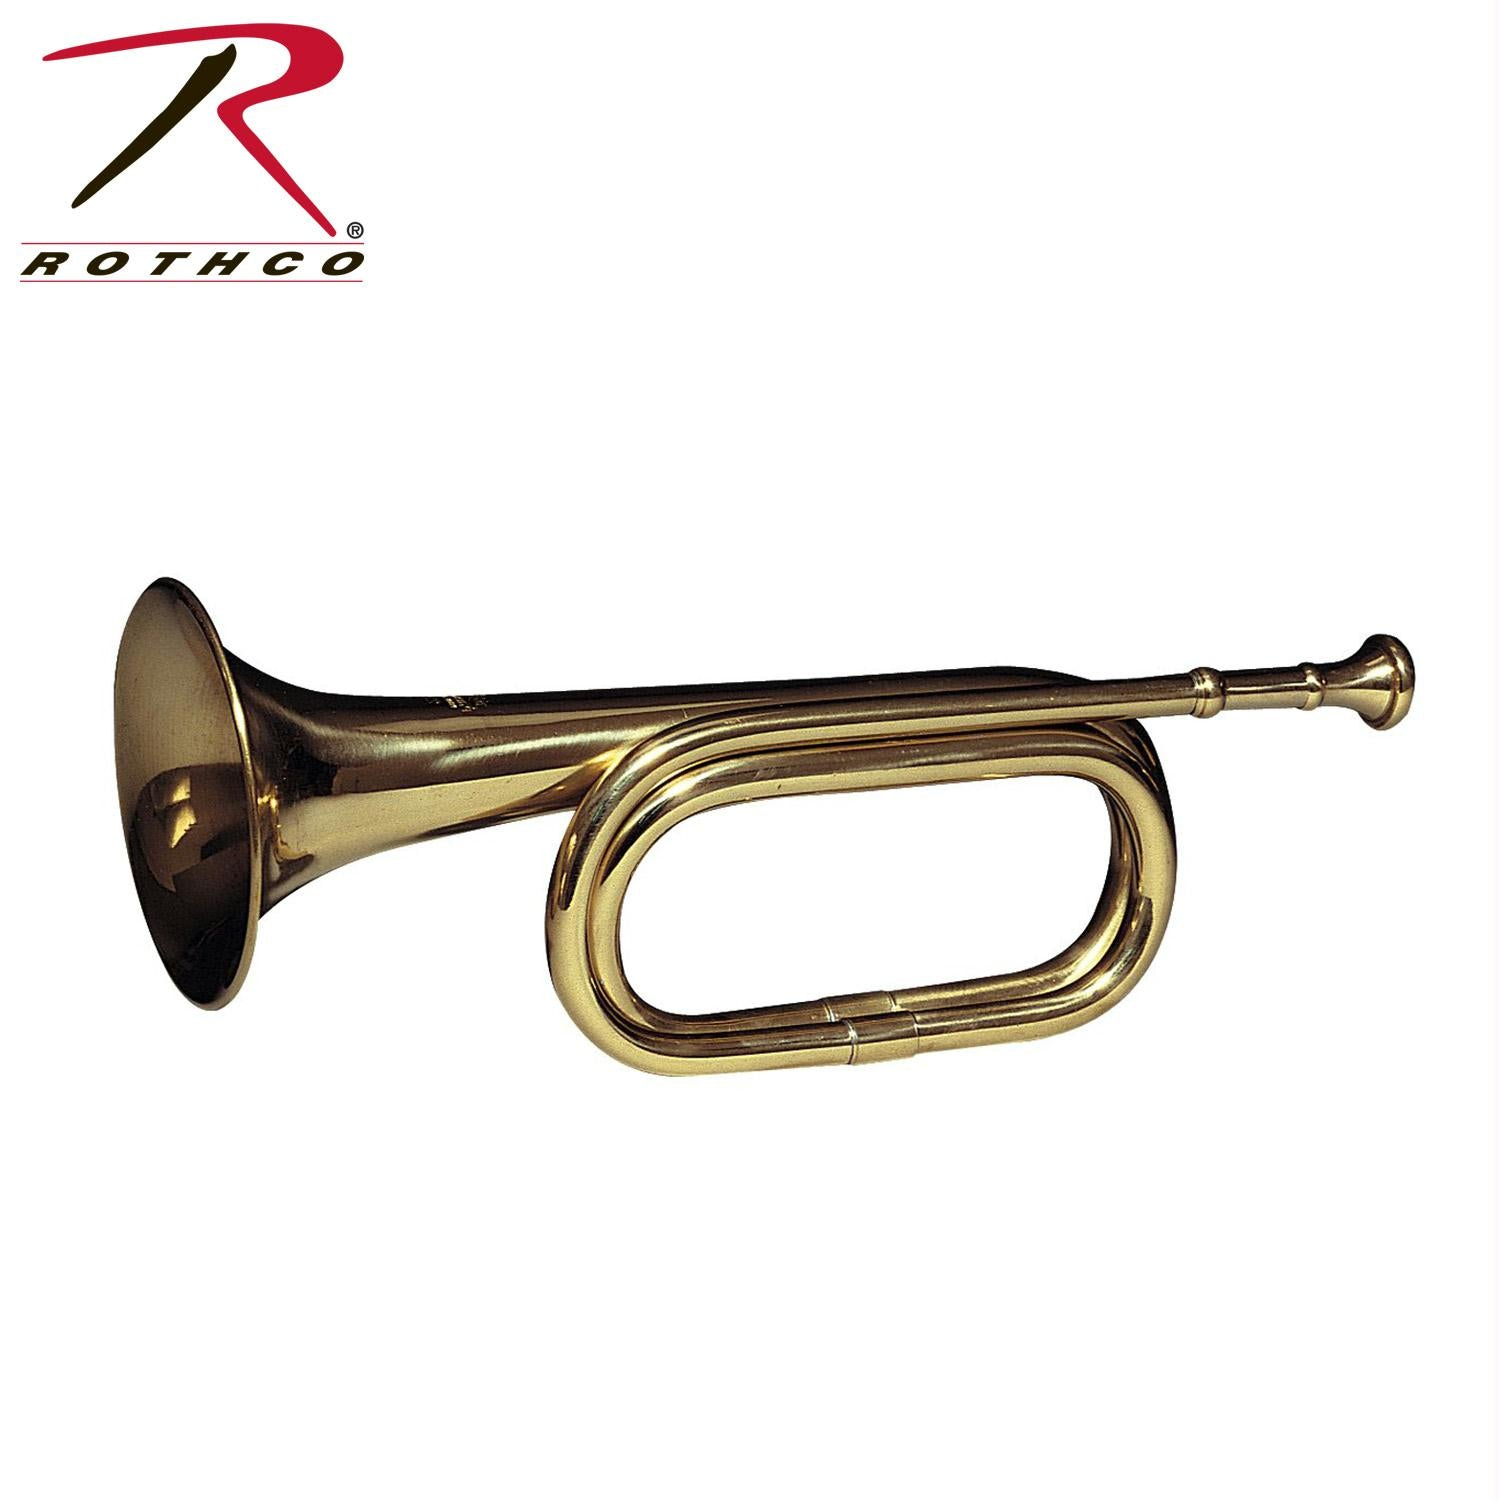 Rothco Brass Cavalry Bugle - Brass / One Size